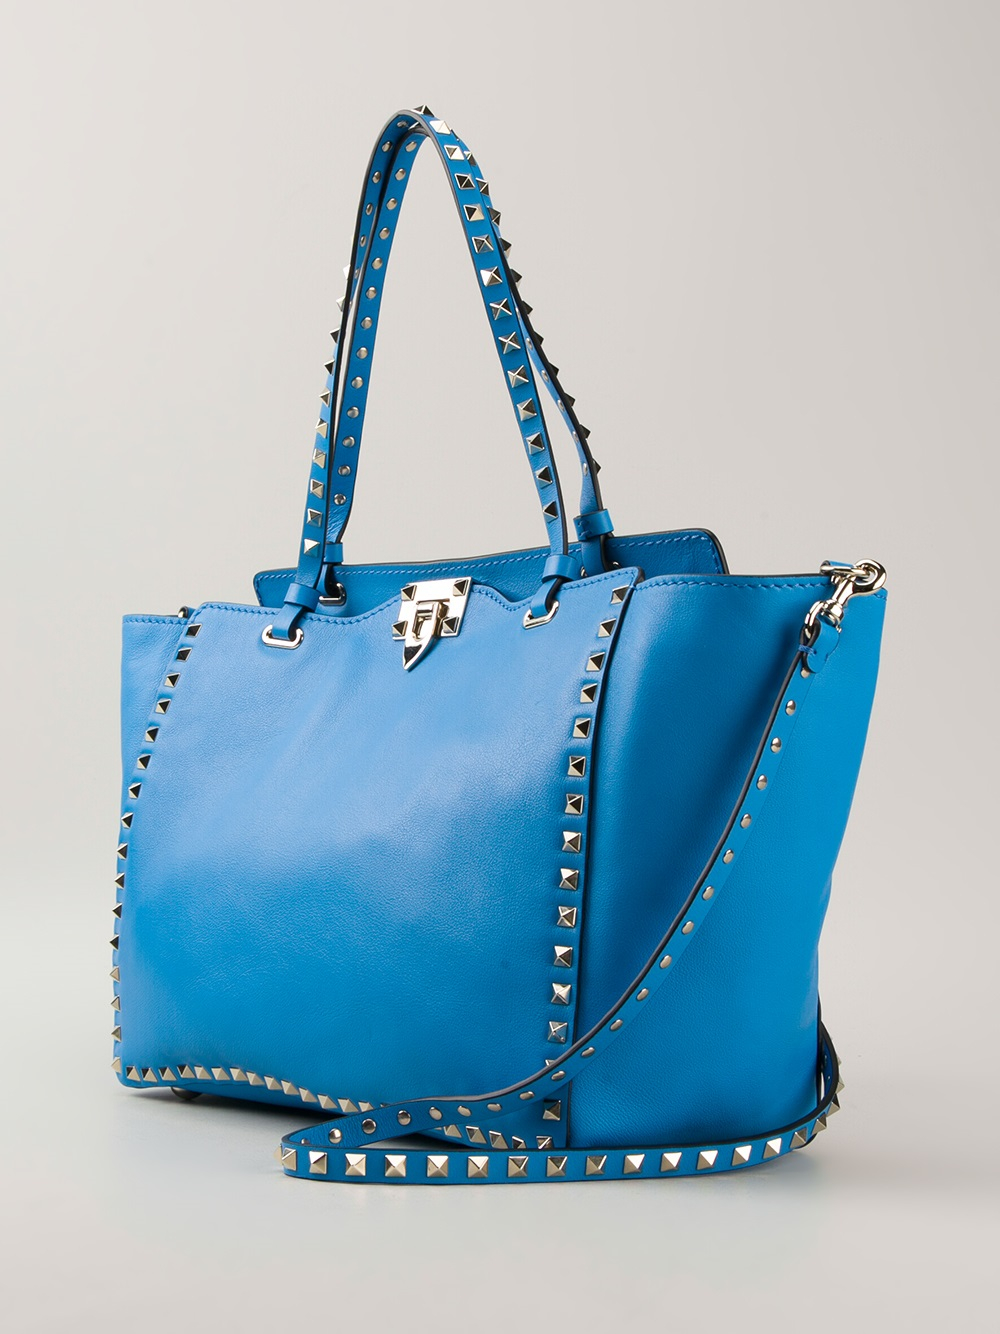 lyst valentino rockstud tote bag in blue. Black Bedroom Furniture Sets. Home Design Ideas